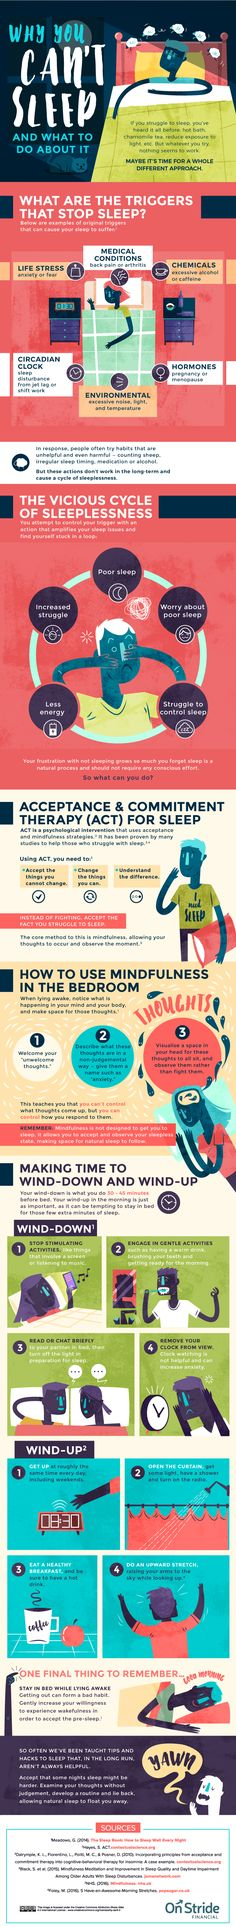 Why You Can't Sleep and What to Do About It #Infographic #LifeStyle #Sleep